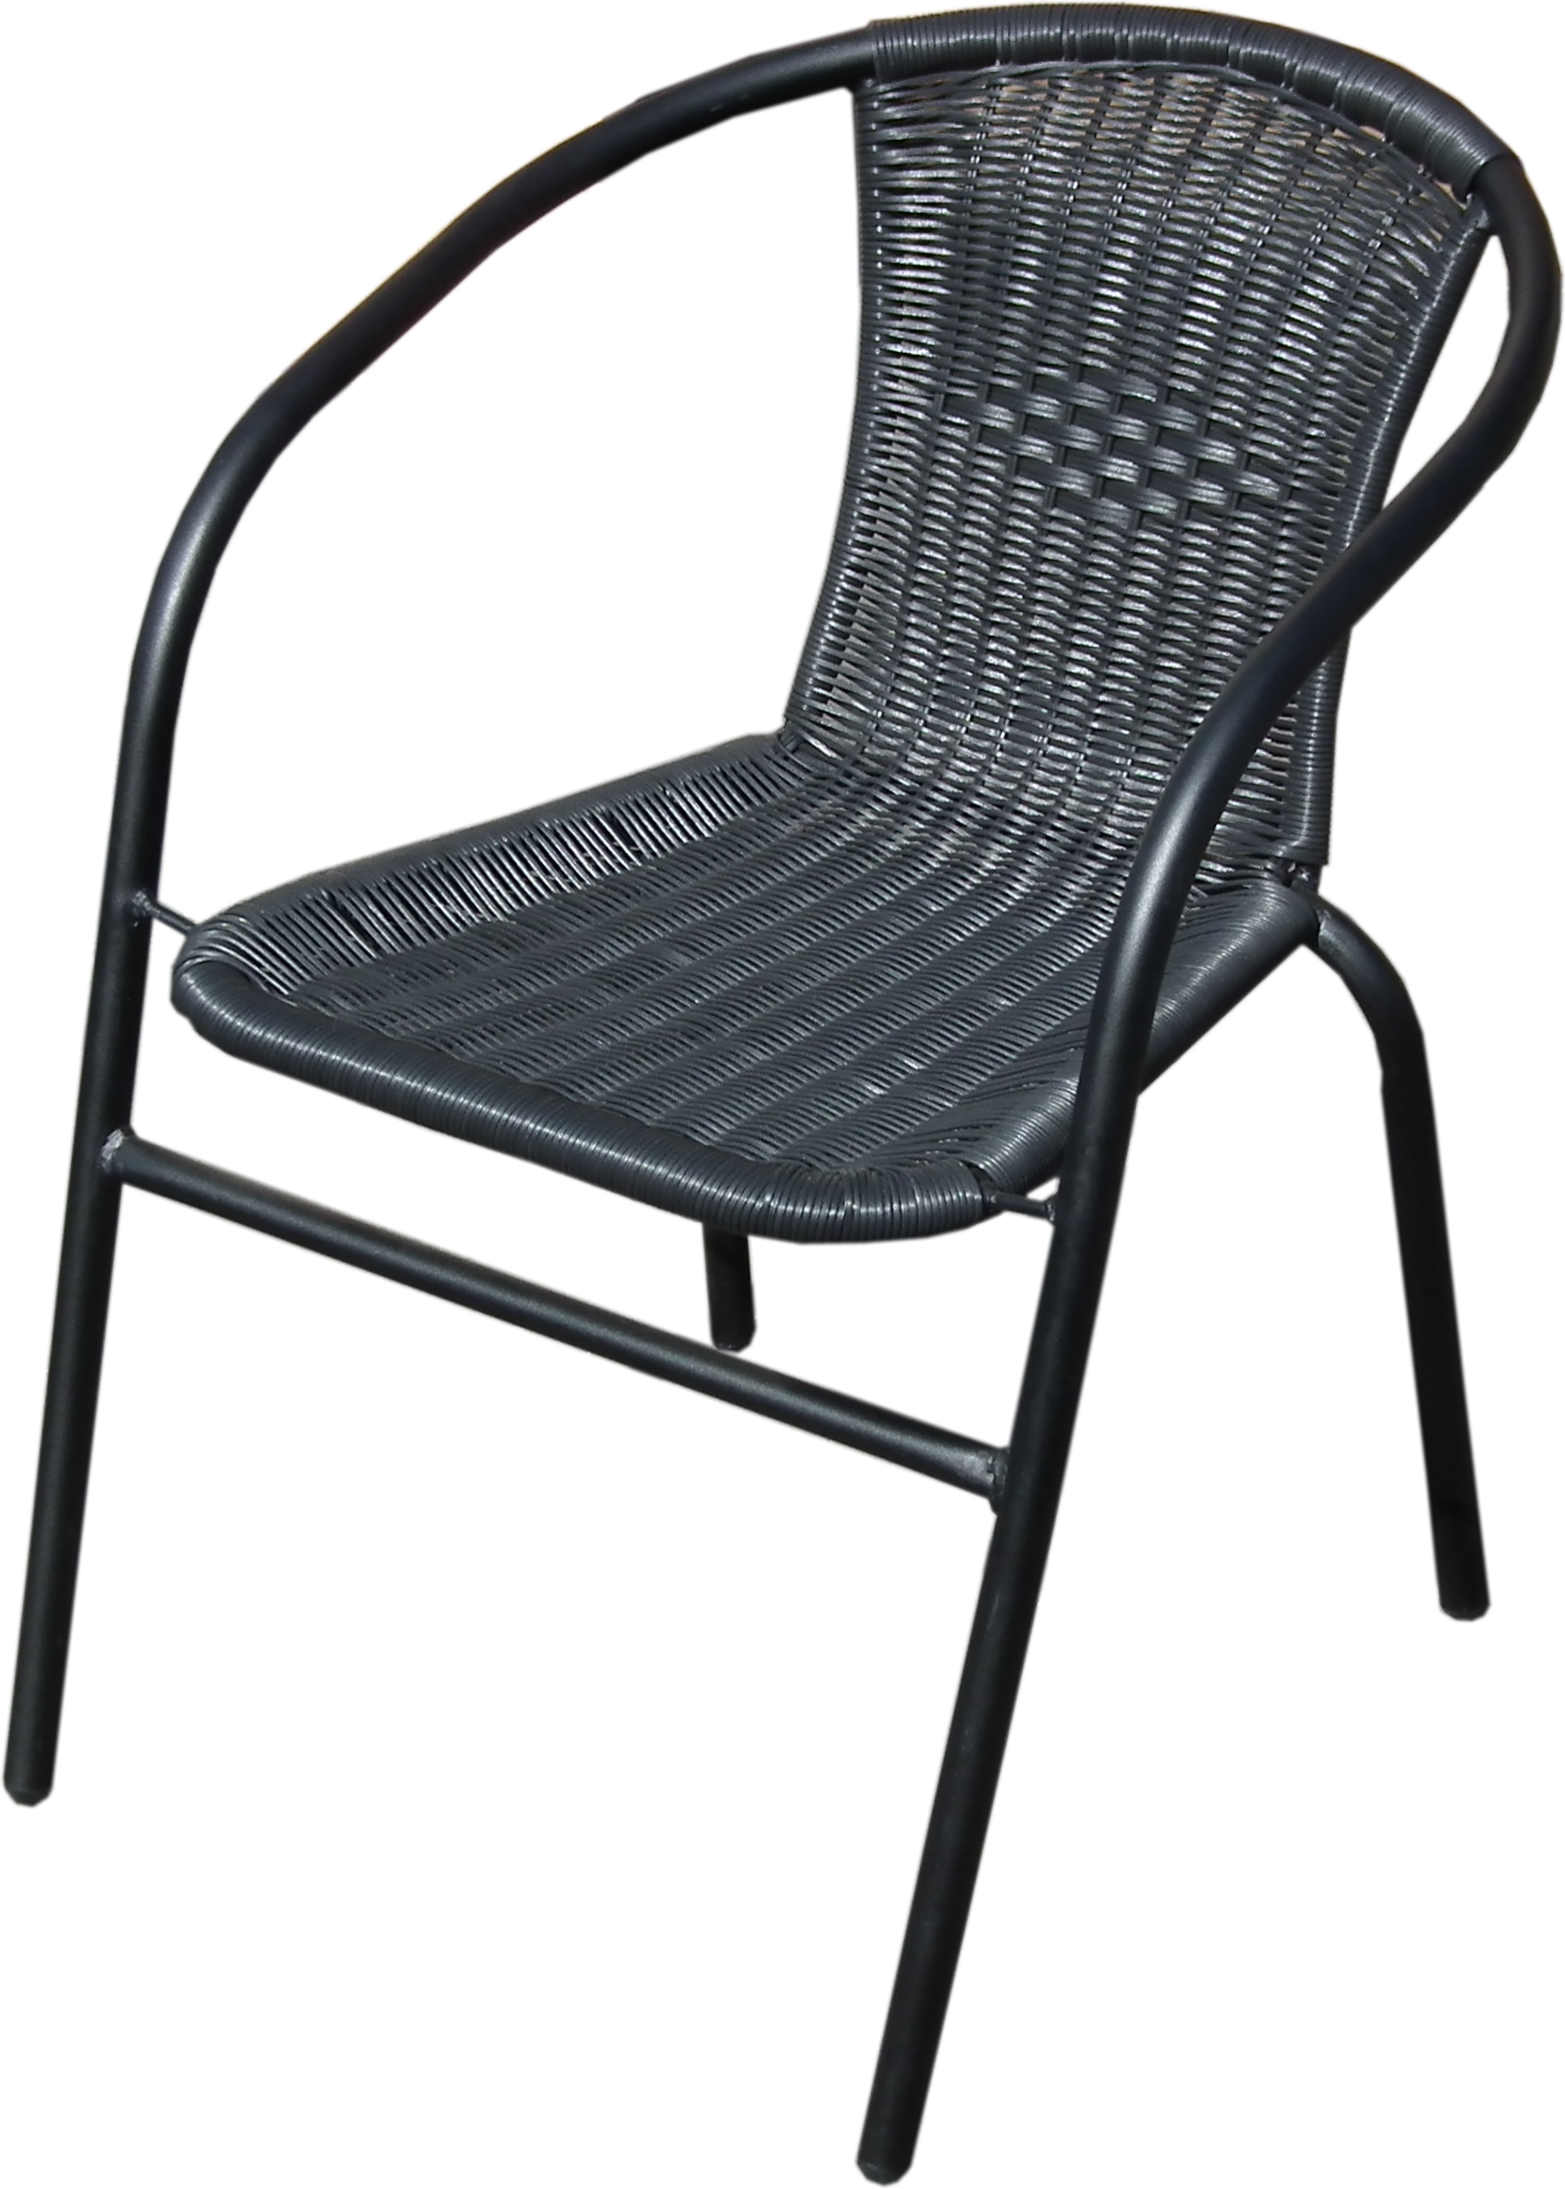 Woven Chair Black Outdoor Wicker Rattan Bistro Chair Metal Frame Woven